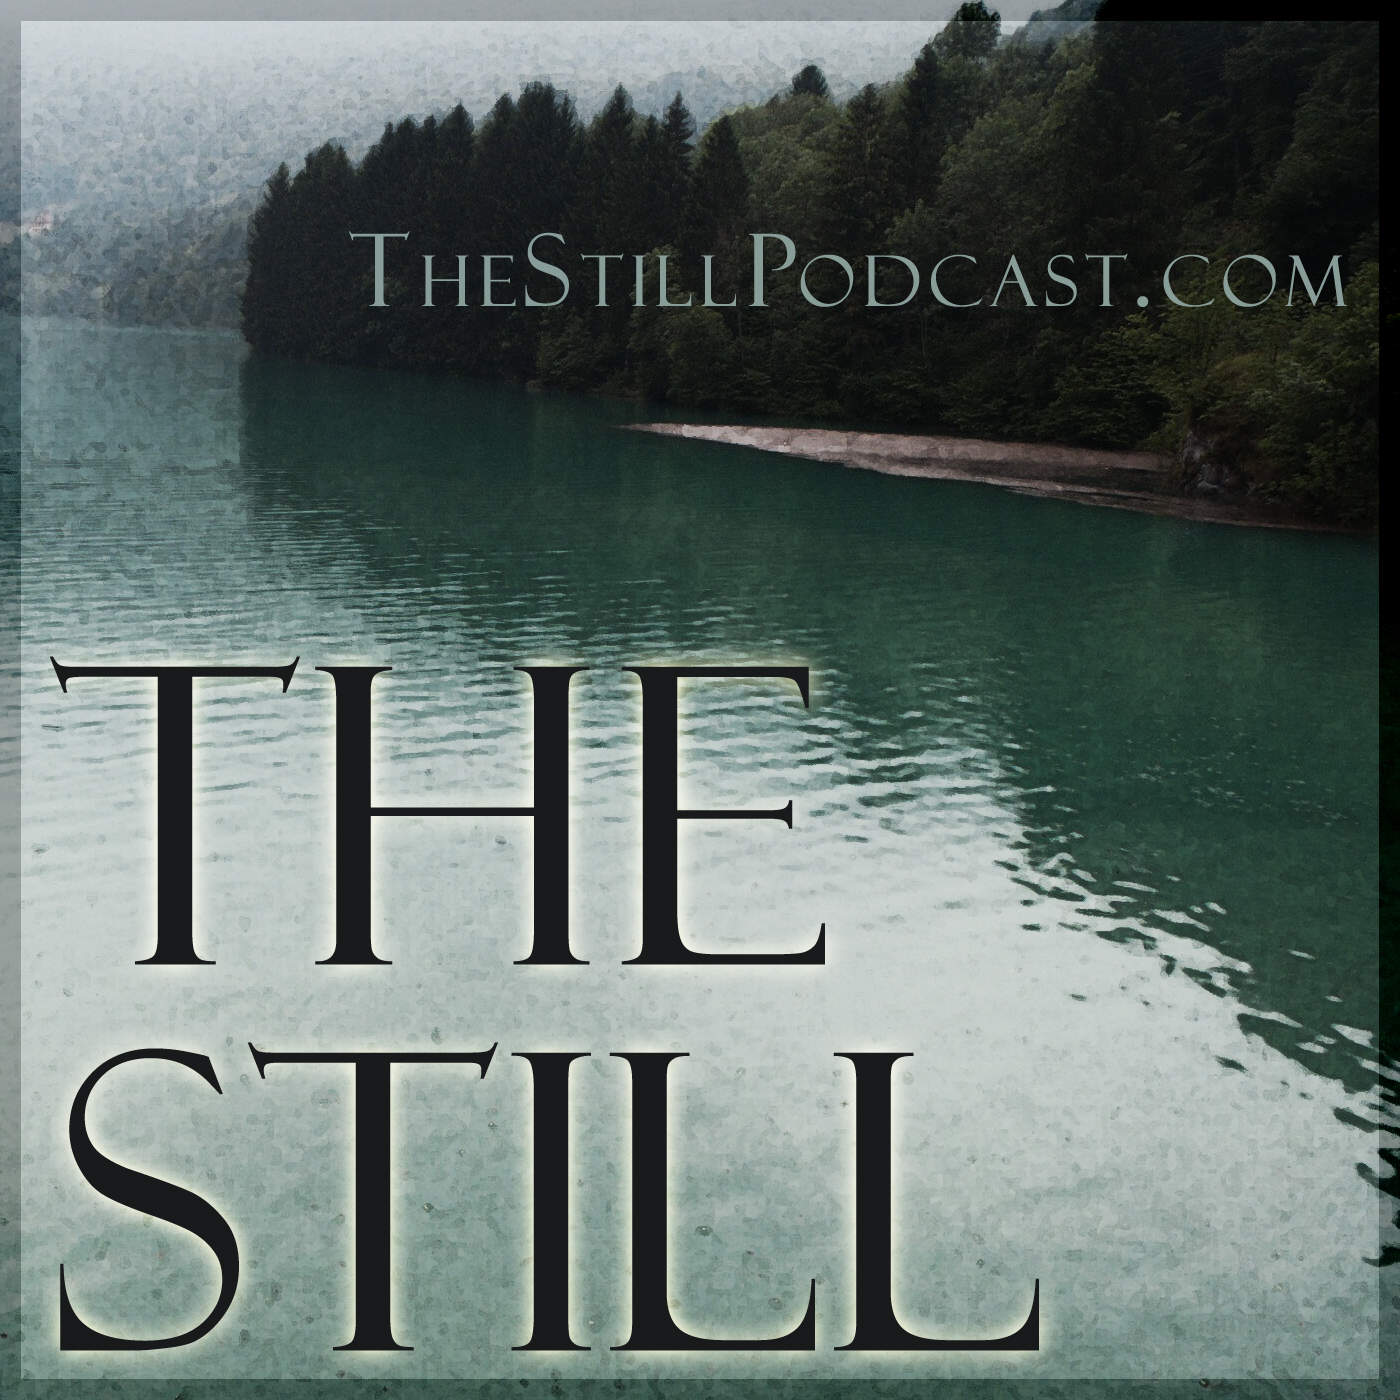 The Still Podcast